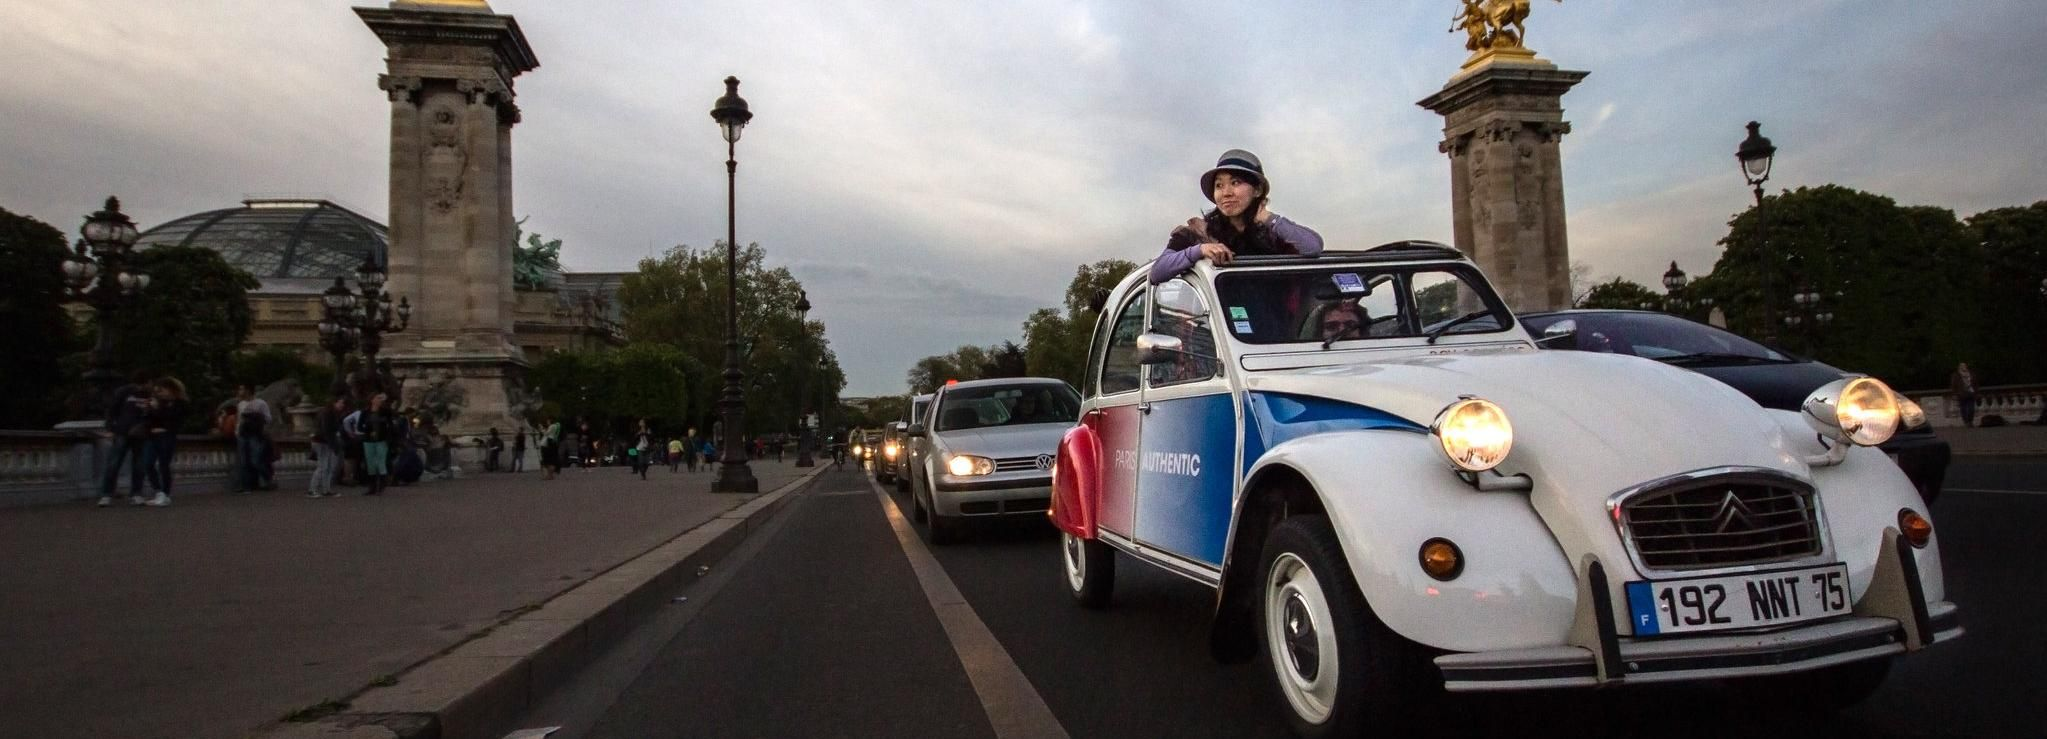 Discover Paris by Night in a Vintage Car with a Local